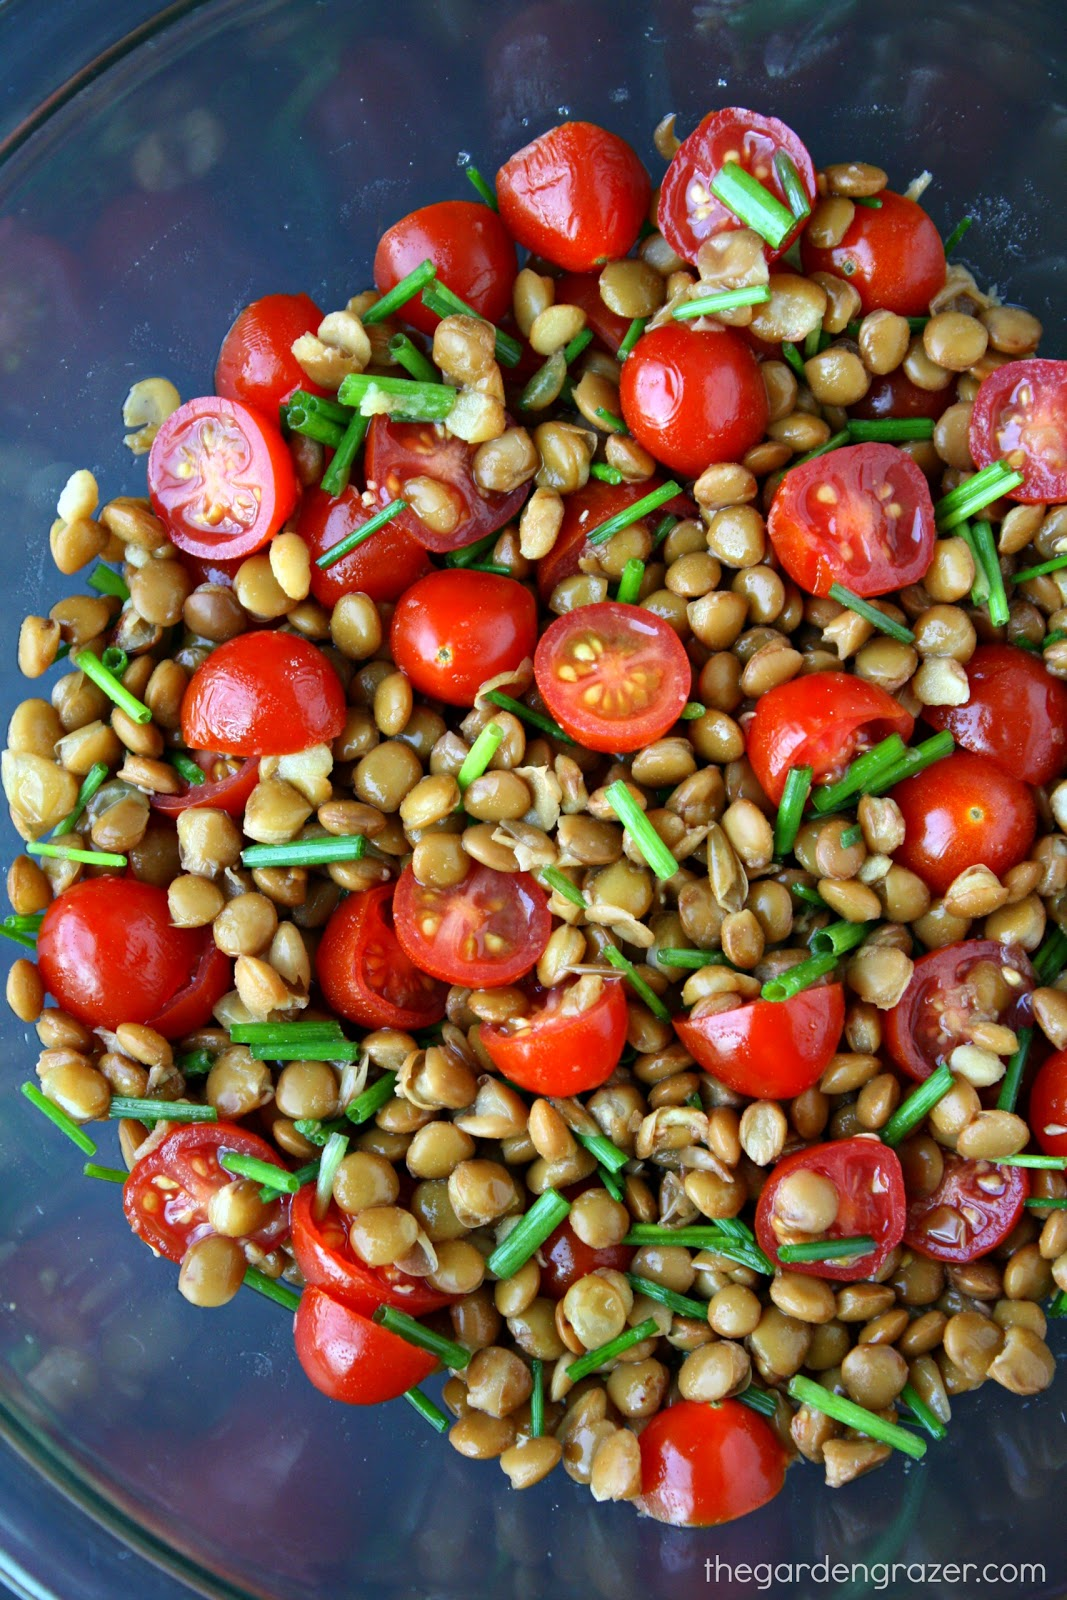 Lentil and tomato salad recommendations